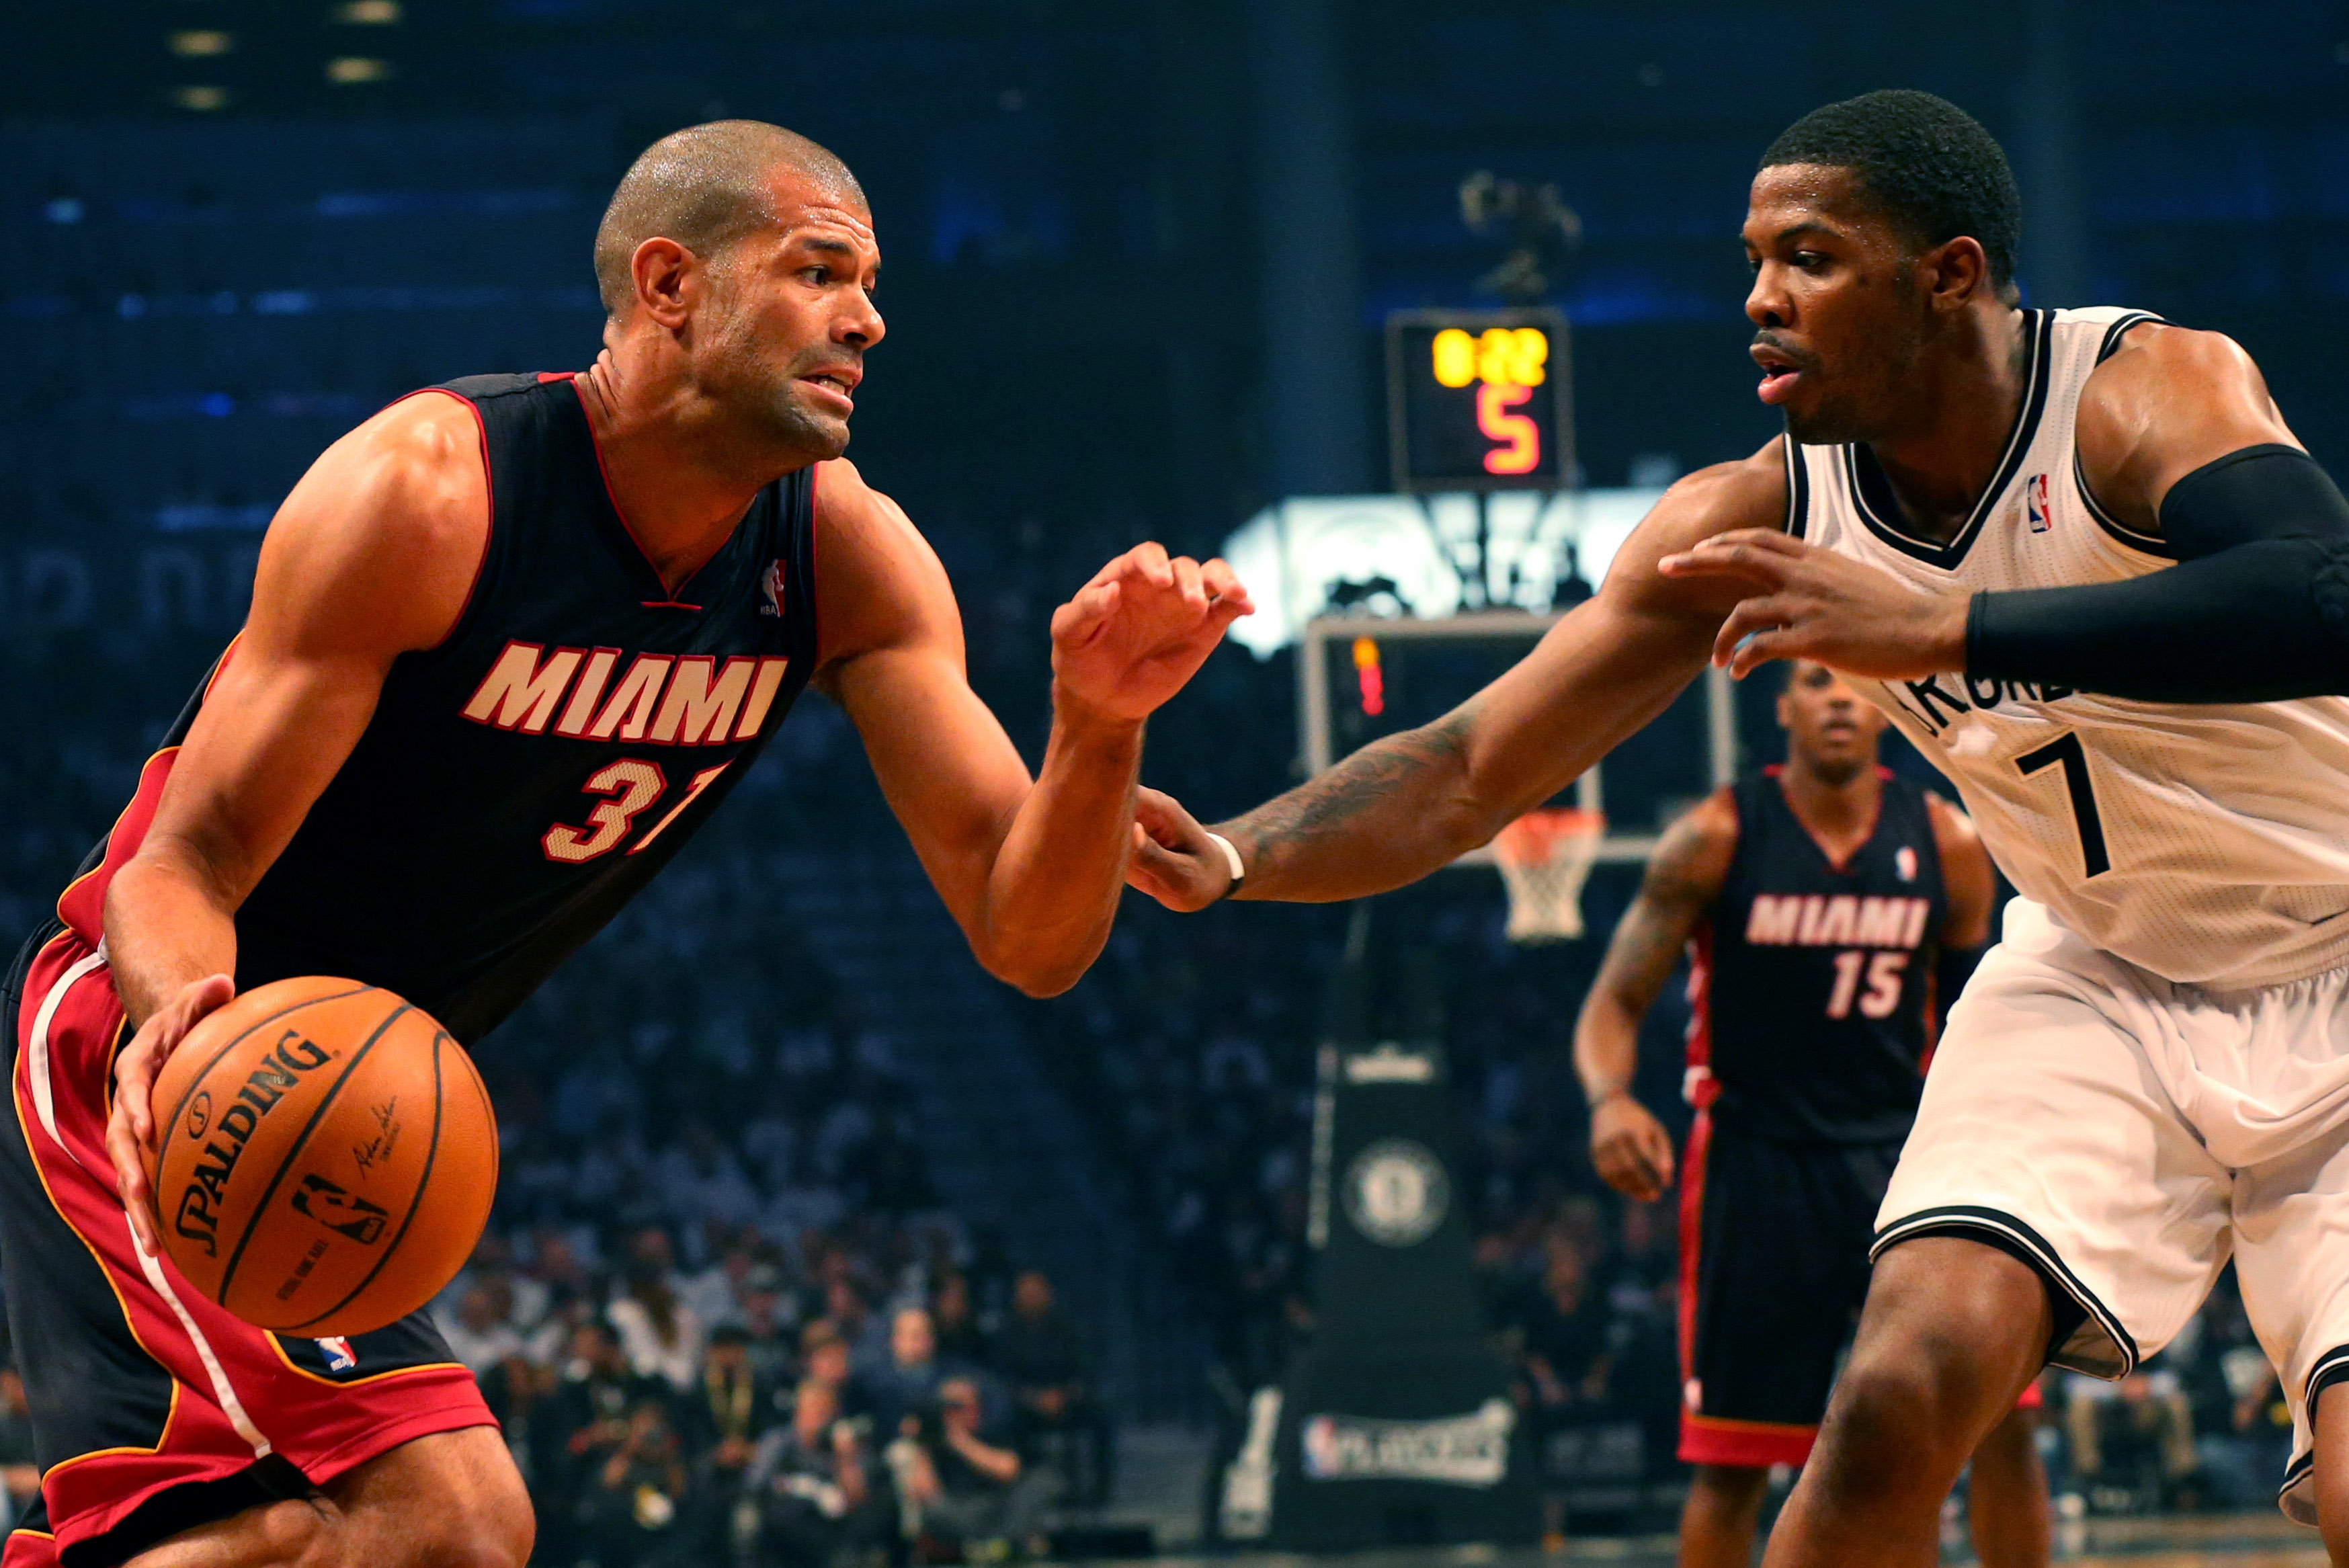 Miami heat updated news - Espn Nba Miami Heat News Nba Miami Heat News Update Miami Heat News On Bosh